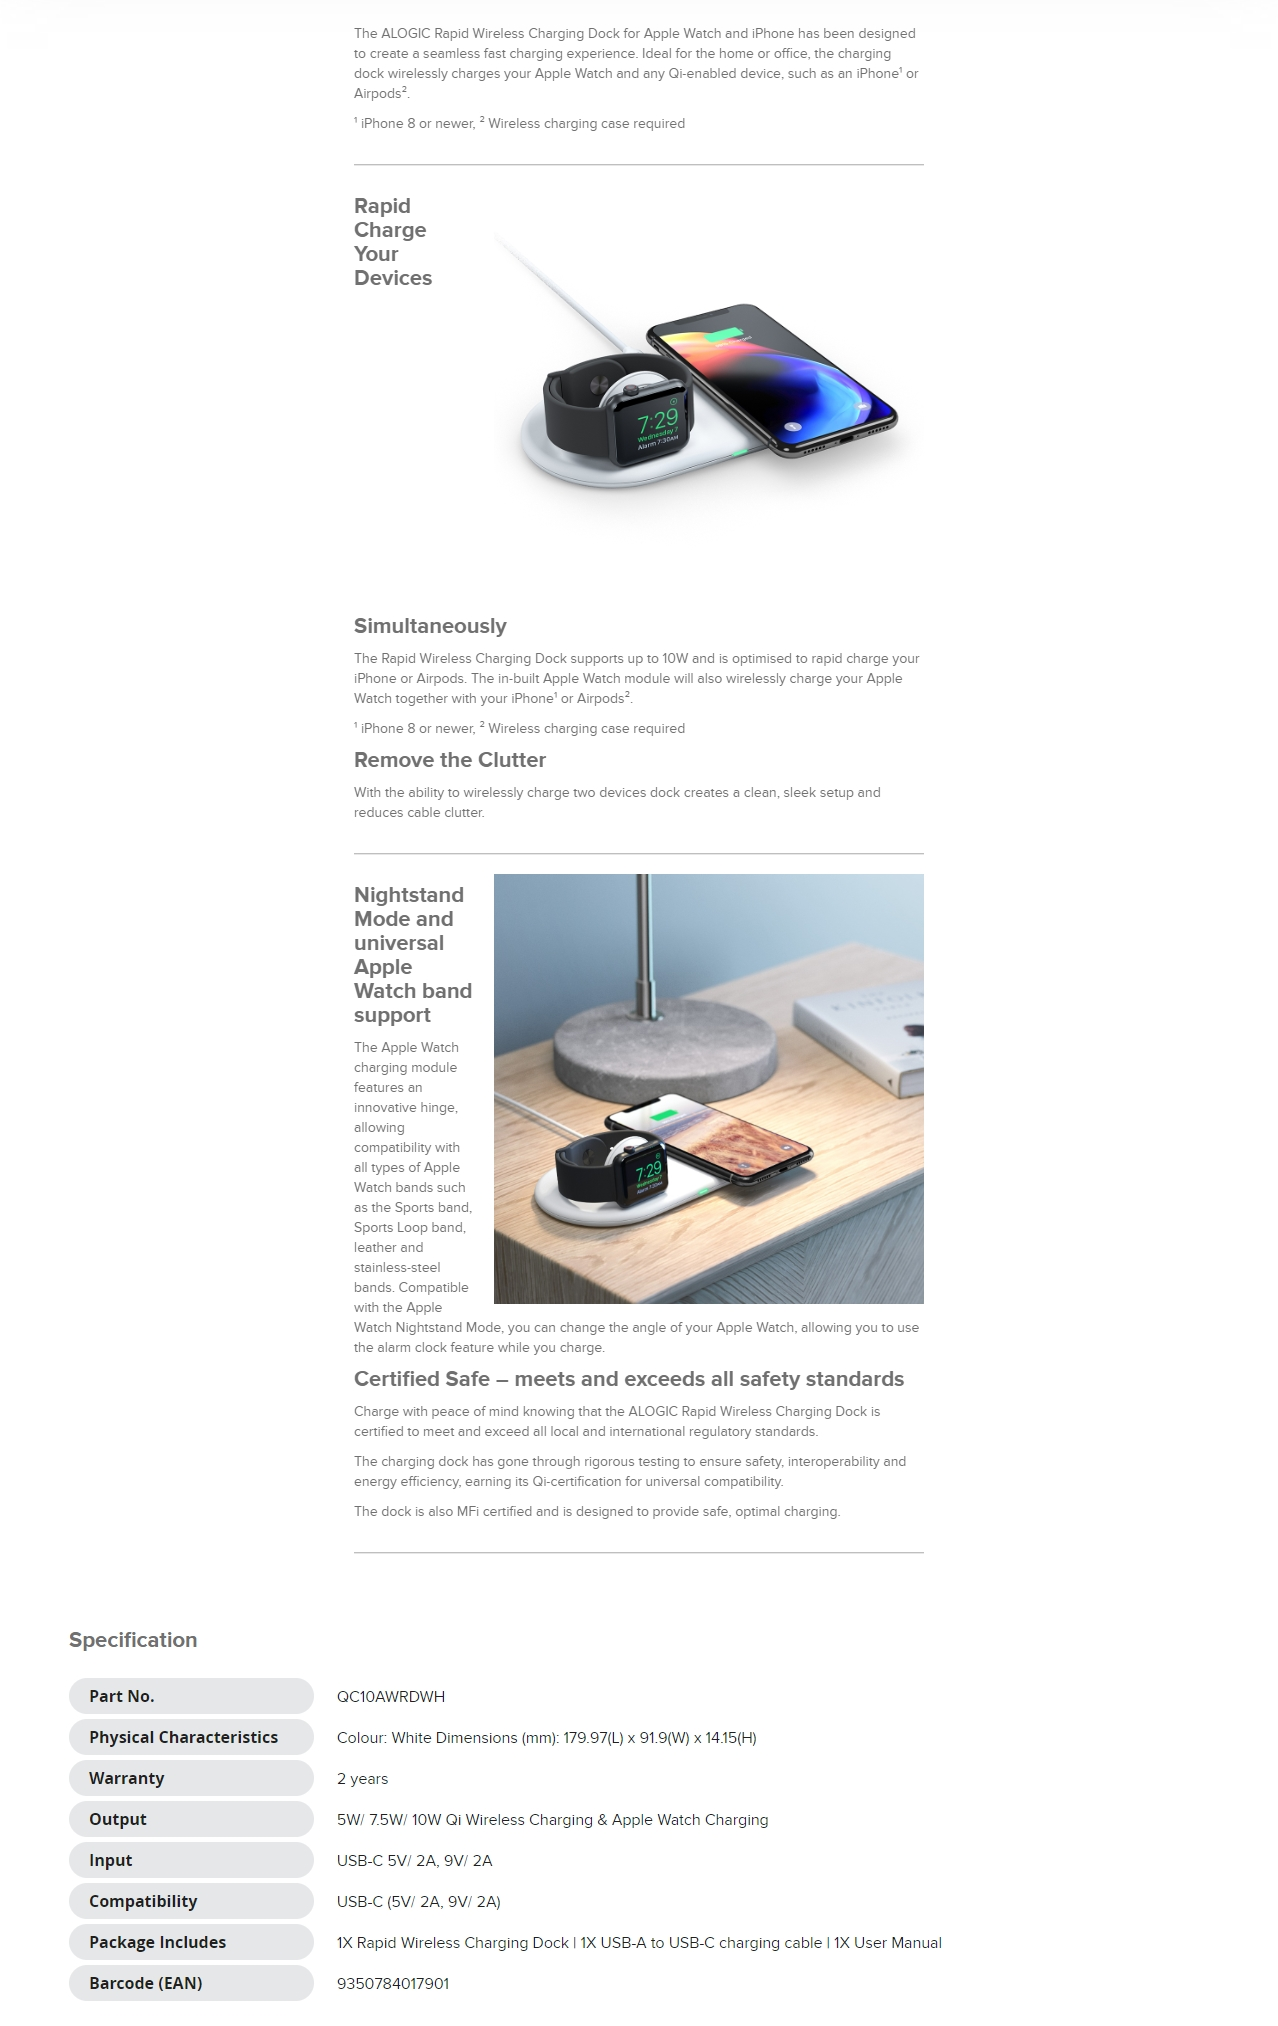 A large marketing image providing additional information about the product ALOGIC RAPID Wireless Charging Dock for Apple Watch & iPhone - Additional alt info not provided